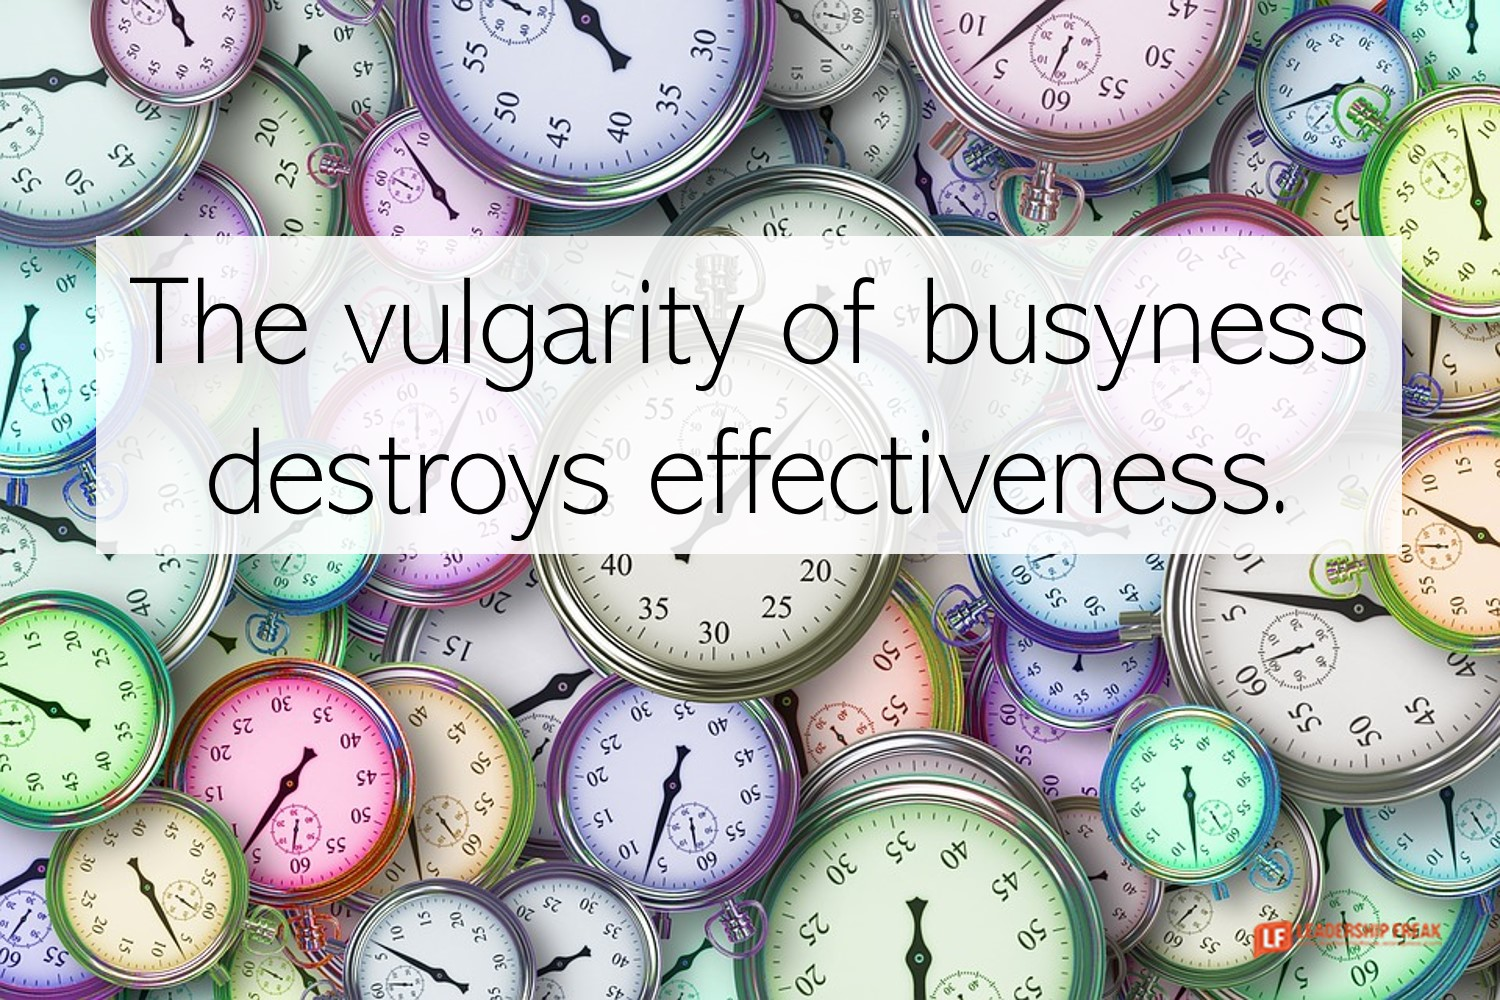 Time. Stop watches.  The vulgarity of busyness destroys effectiveness.